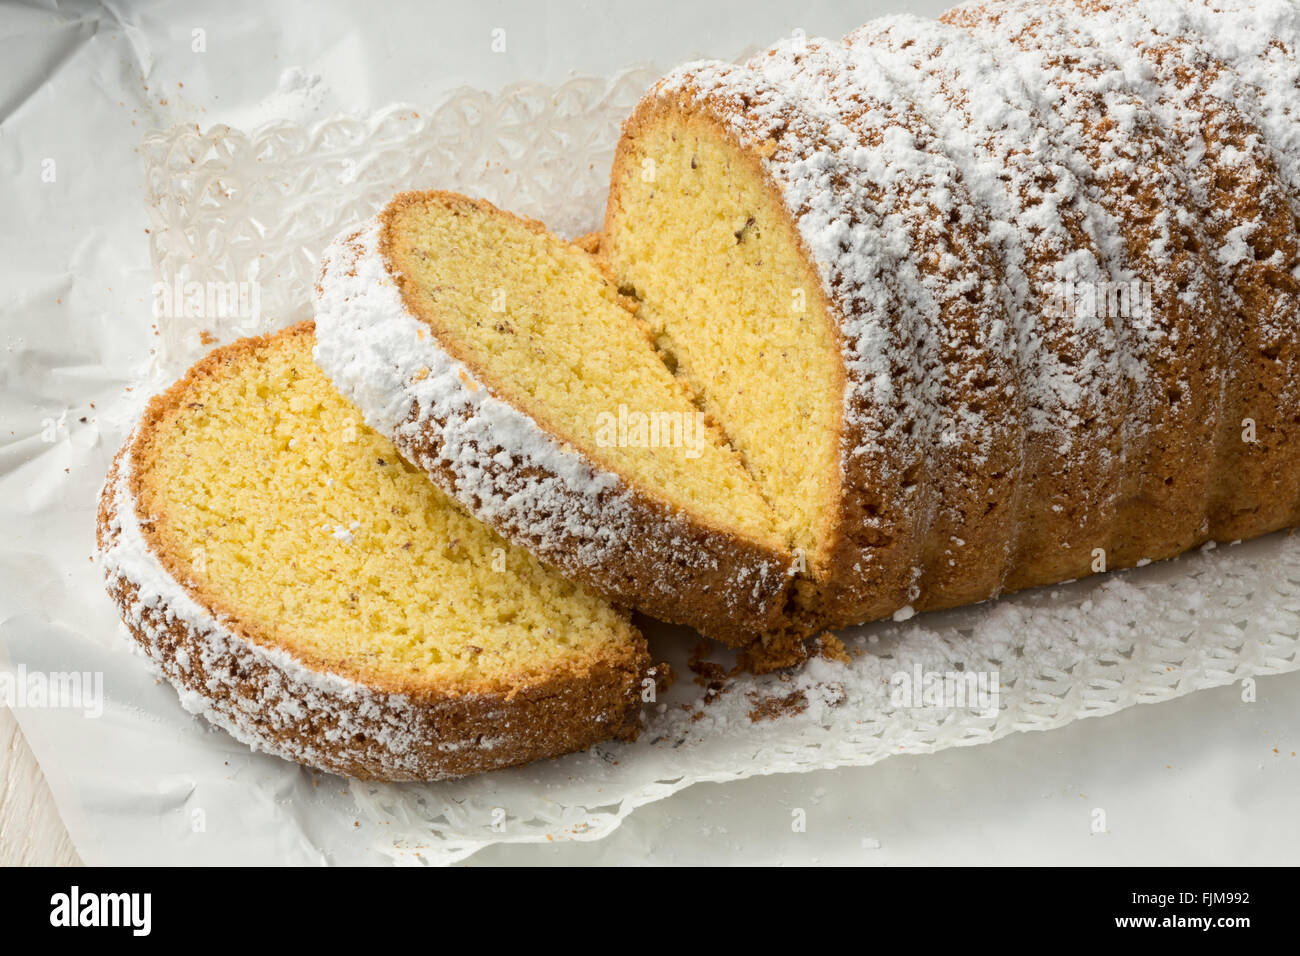 Dolce Varese, made with corn flour and ground almonds, from Varese, Lombardy, Italy Stock Photo